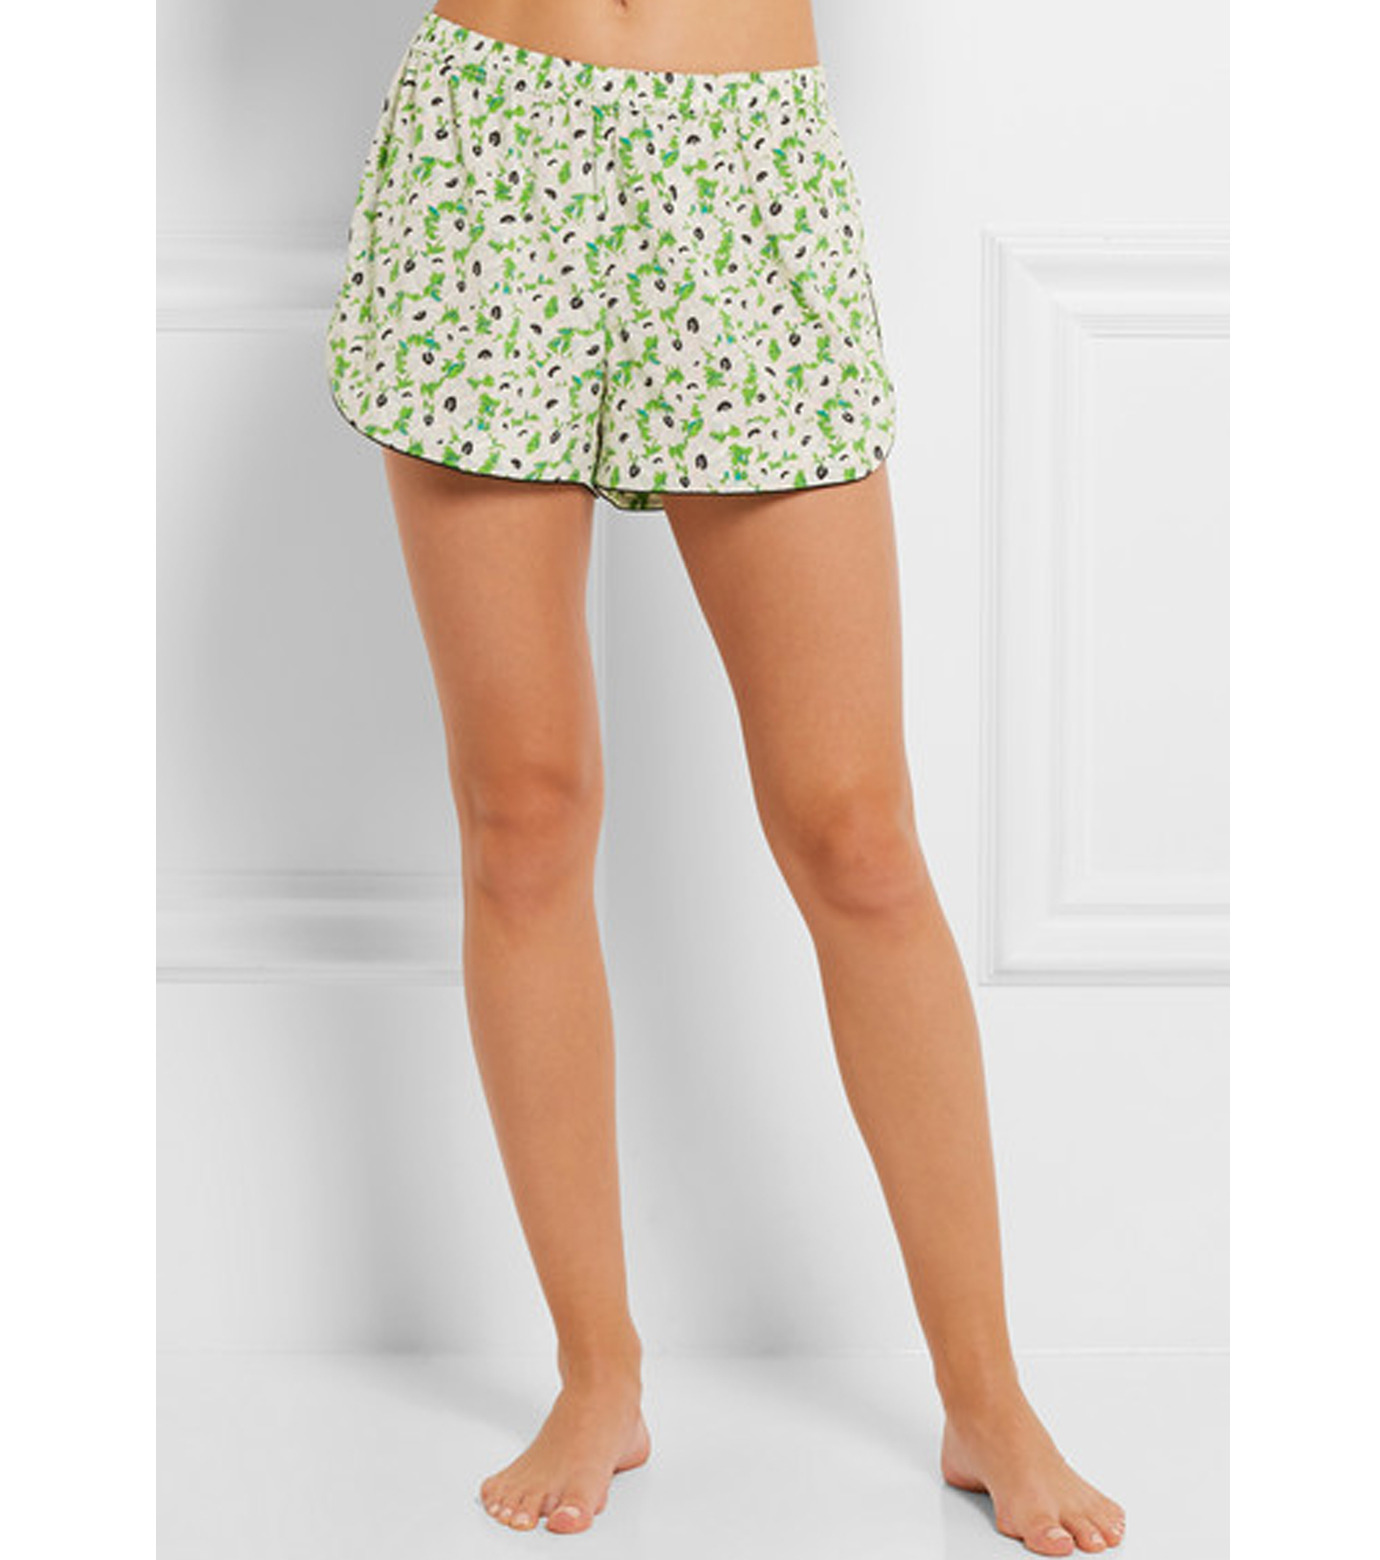 Stella McCartney Lingerie(ステラ マッカートニー ランジェリー)のPOPPY SNOOZING LONG PJ SET SL-LIGHT GREEN(LINGERIE/LINGERIE)-S108-251-21 拡大詳細画像3